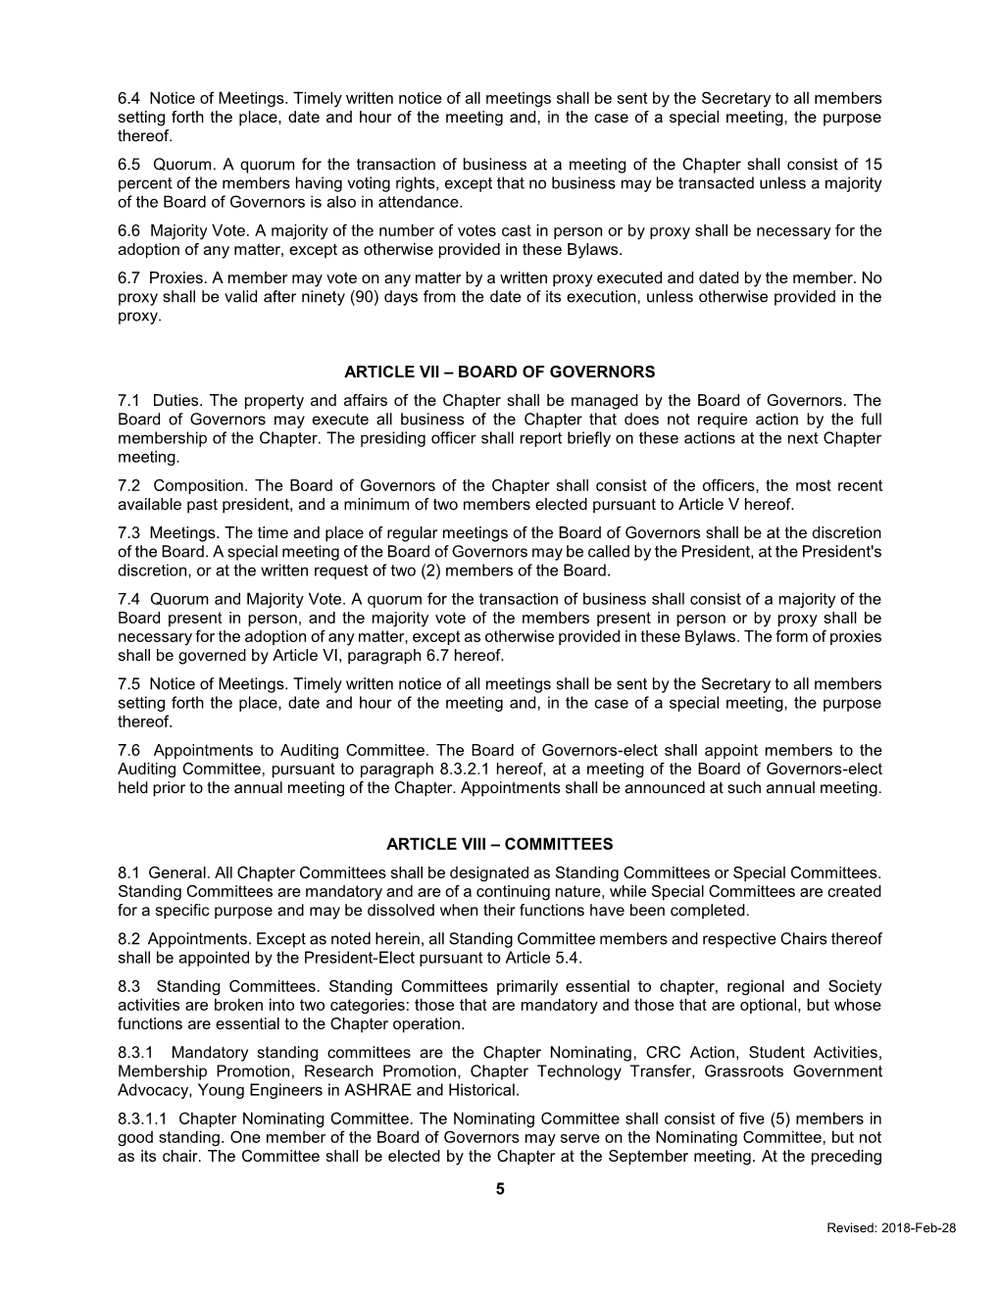 Southern Alberta Chapter CBL Page 005.png